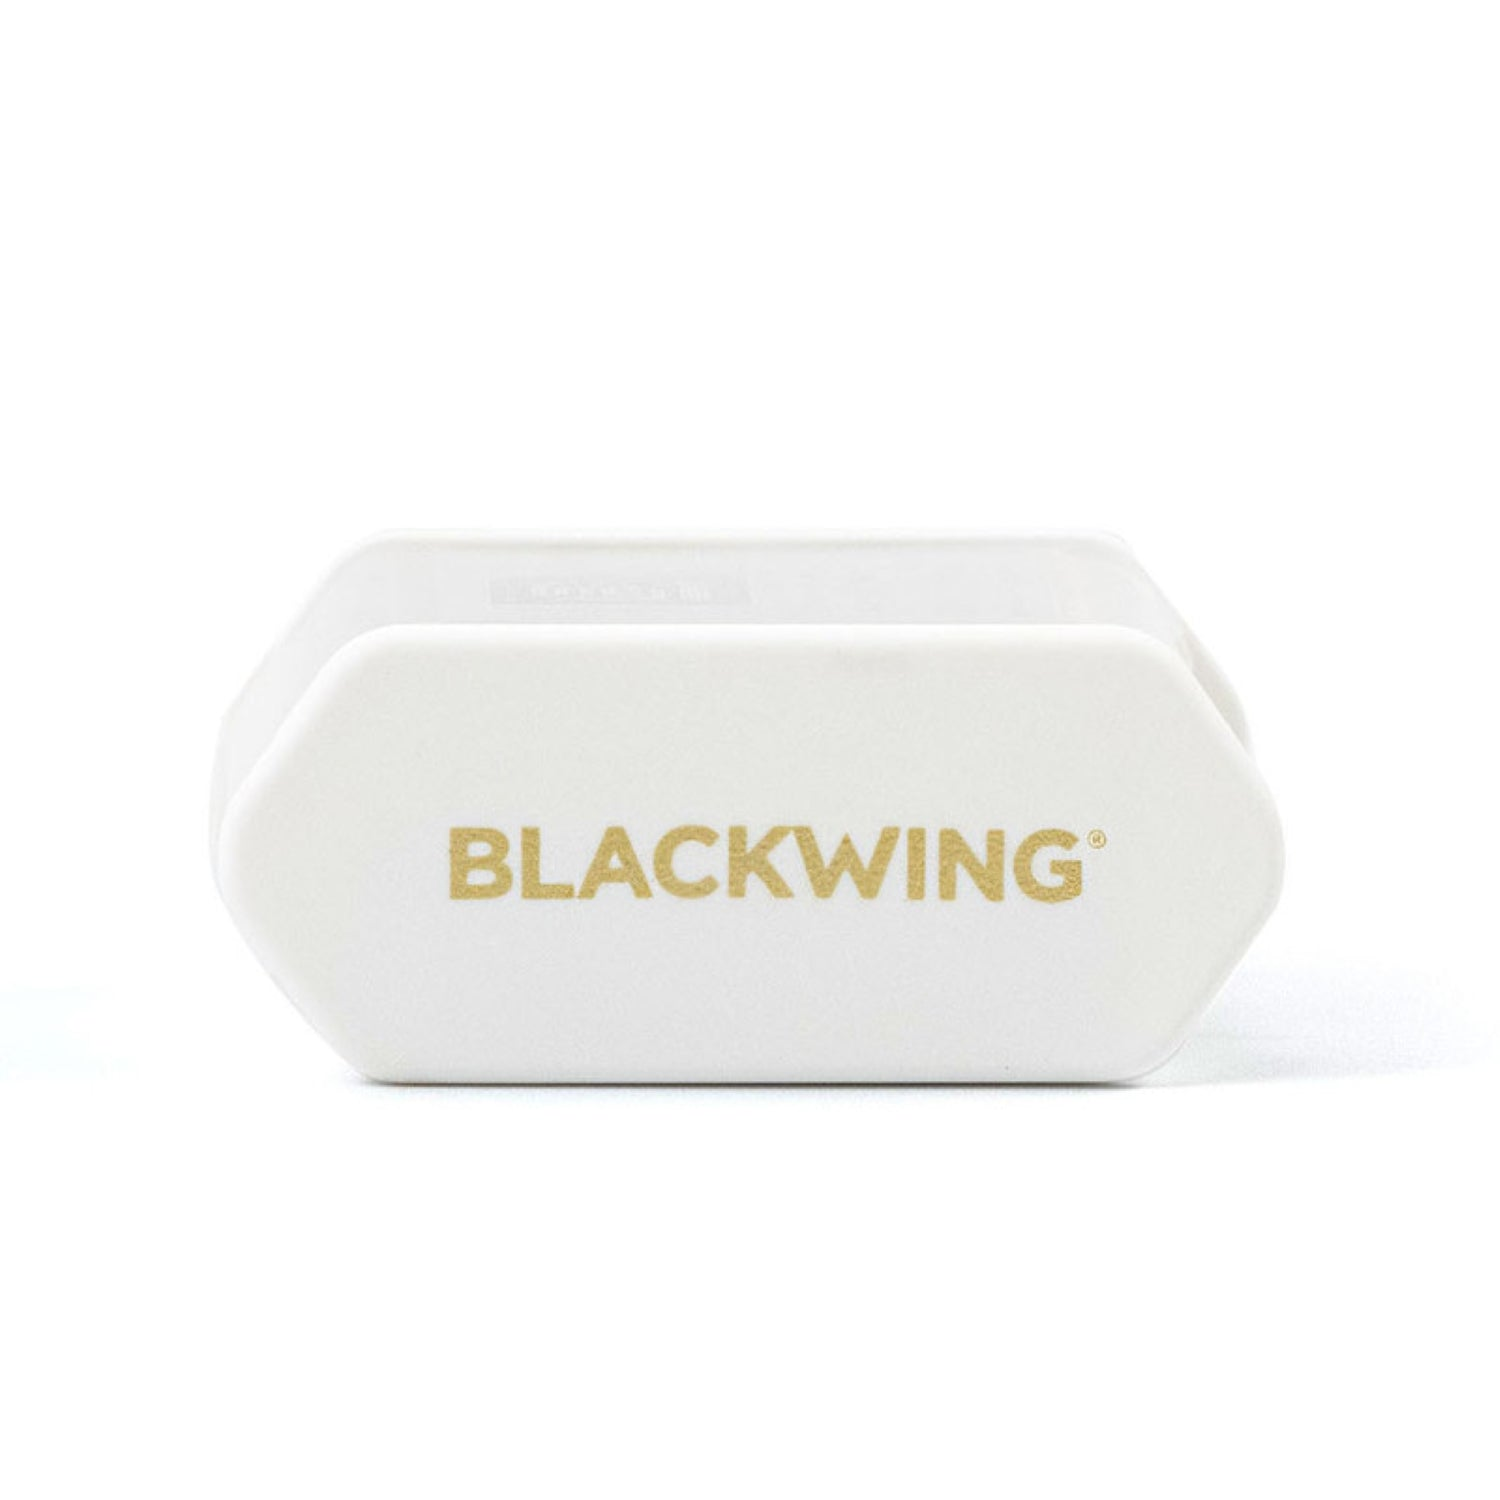 Blackwing - Two-Step Pencil Sharpener - White